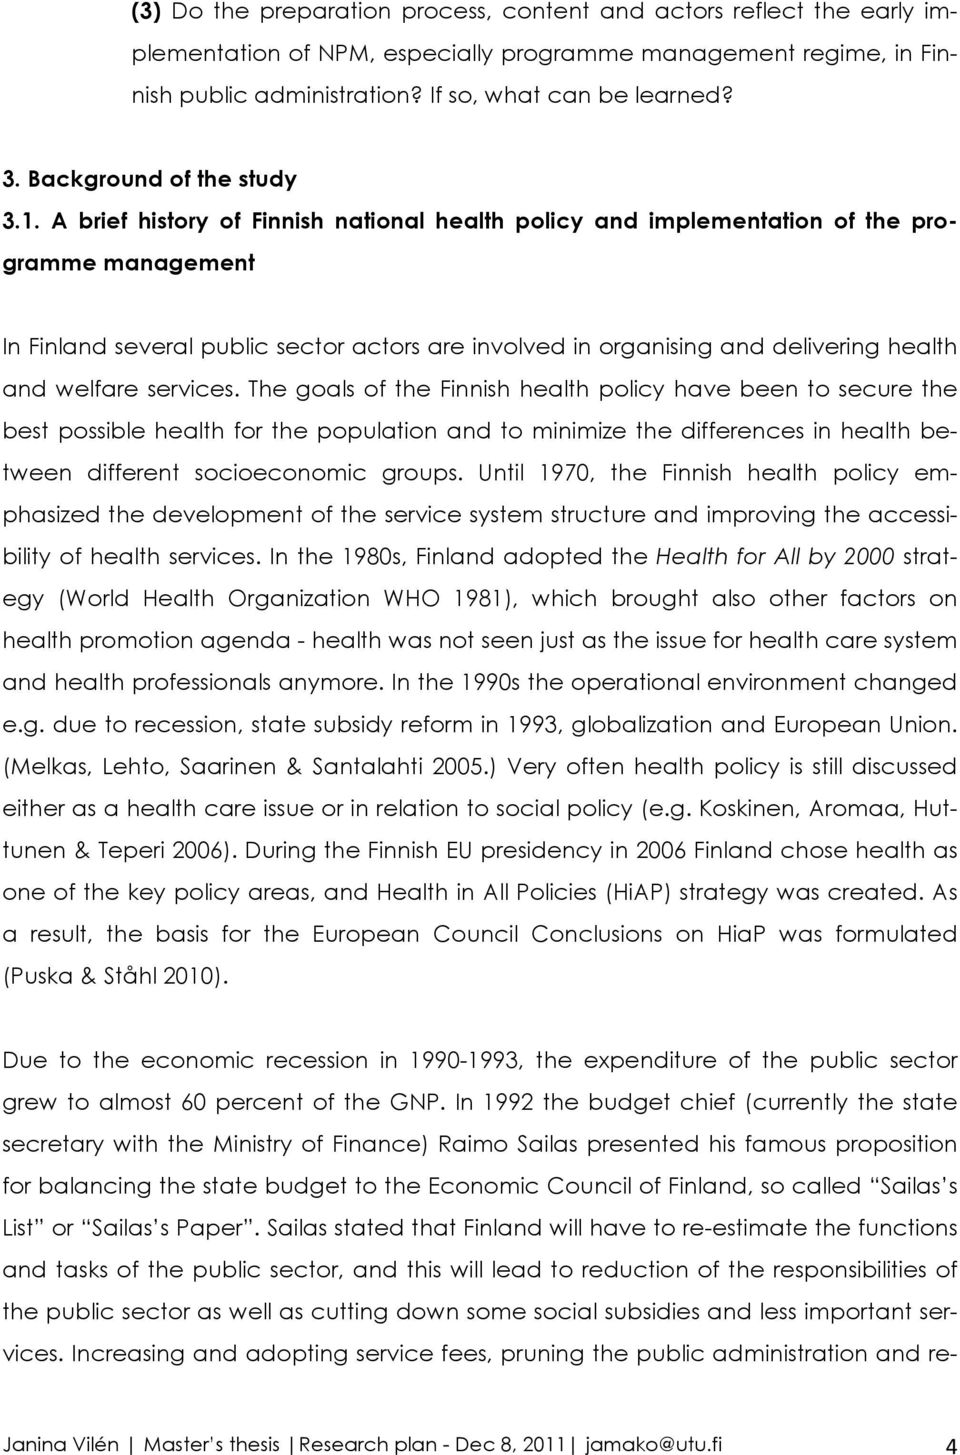 A brief history of Finnish national health policy and implementation of the programme management In Finland several public sector actors are involved in organising and delivering health and welfare